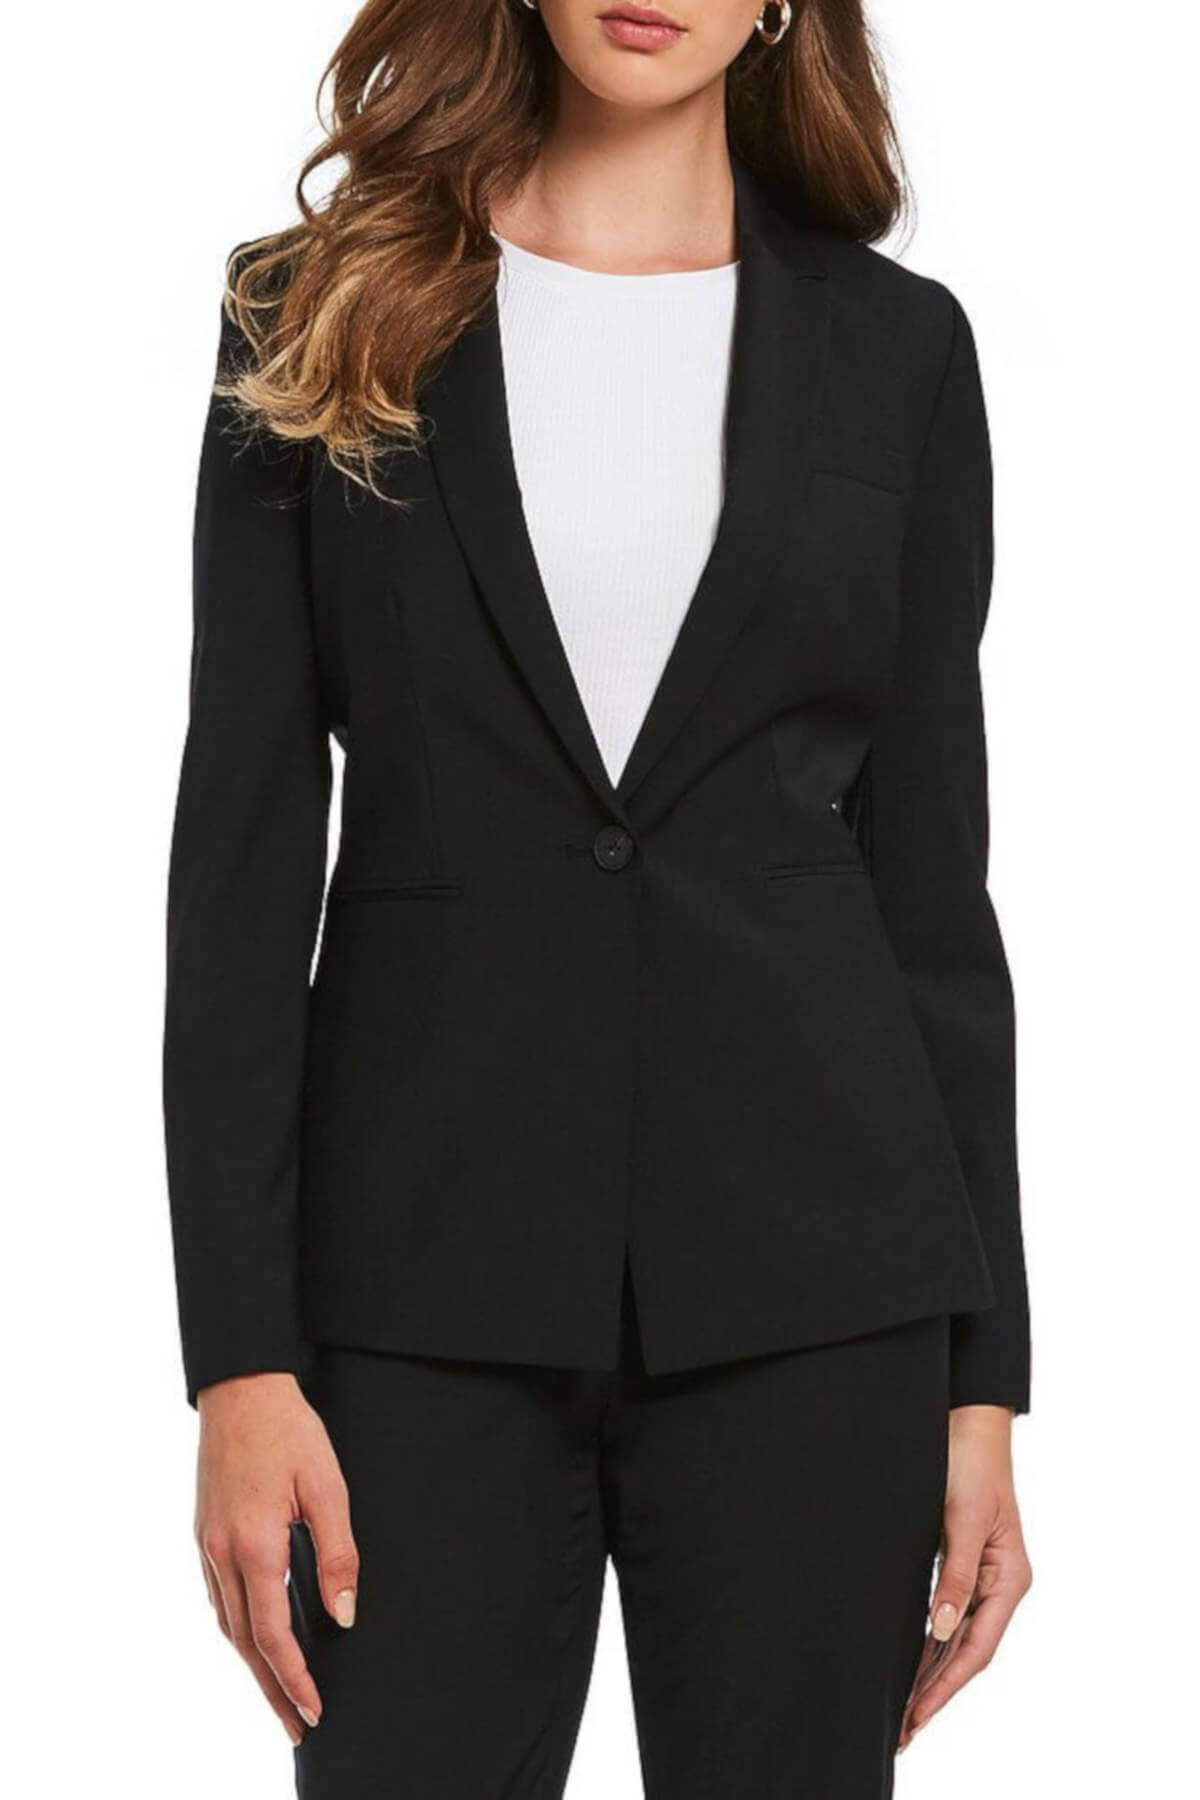 Black Antonio Melani Gayle Wool Blazer Business Casual Work Attire for Women